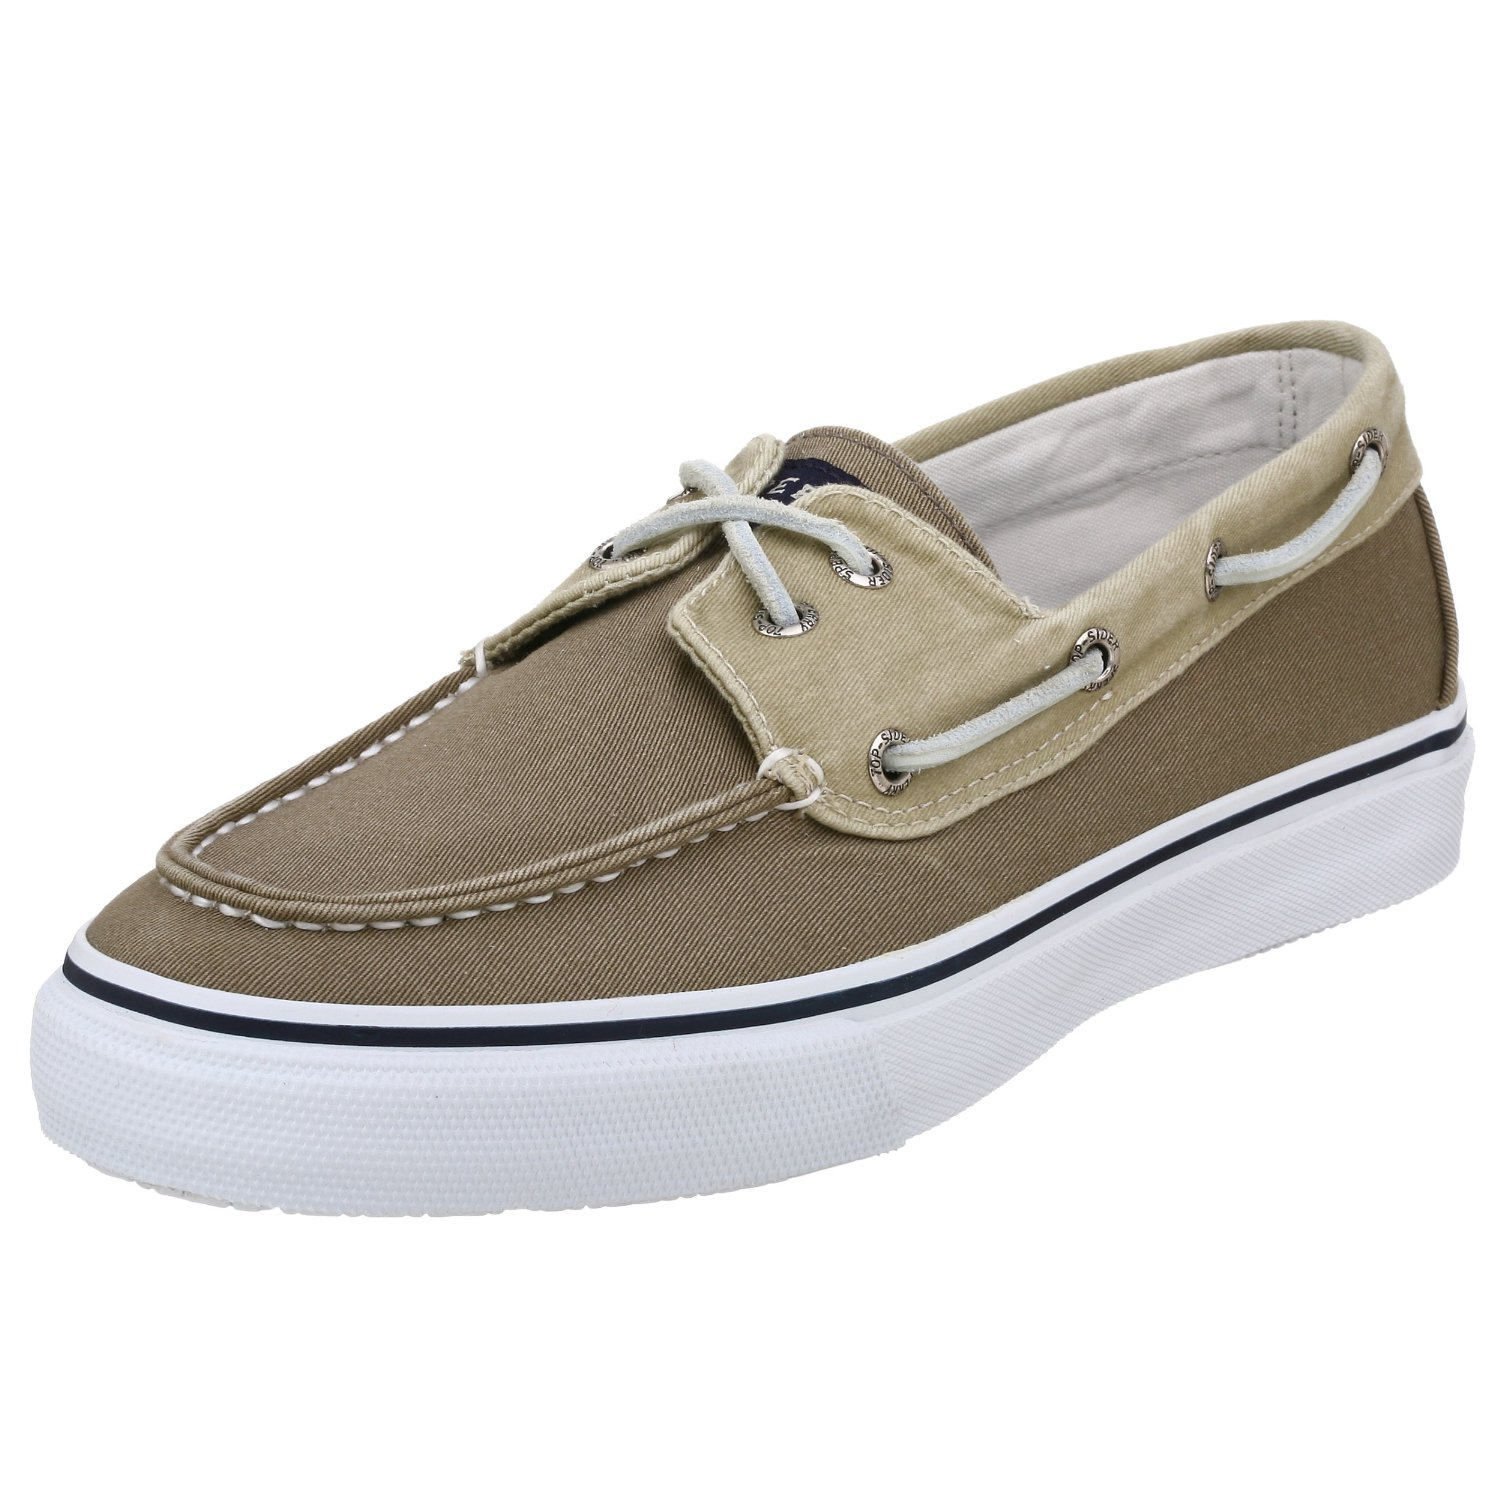 Sperry Topsider Mens Bahama 2 Eye Boat Shoe in Khaki for Men khaki